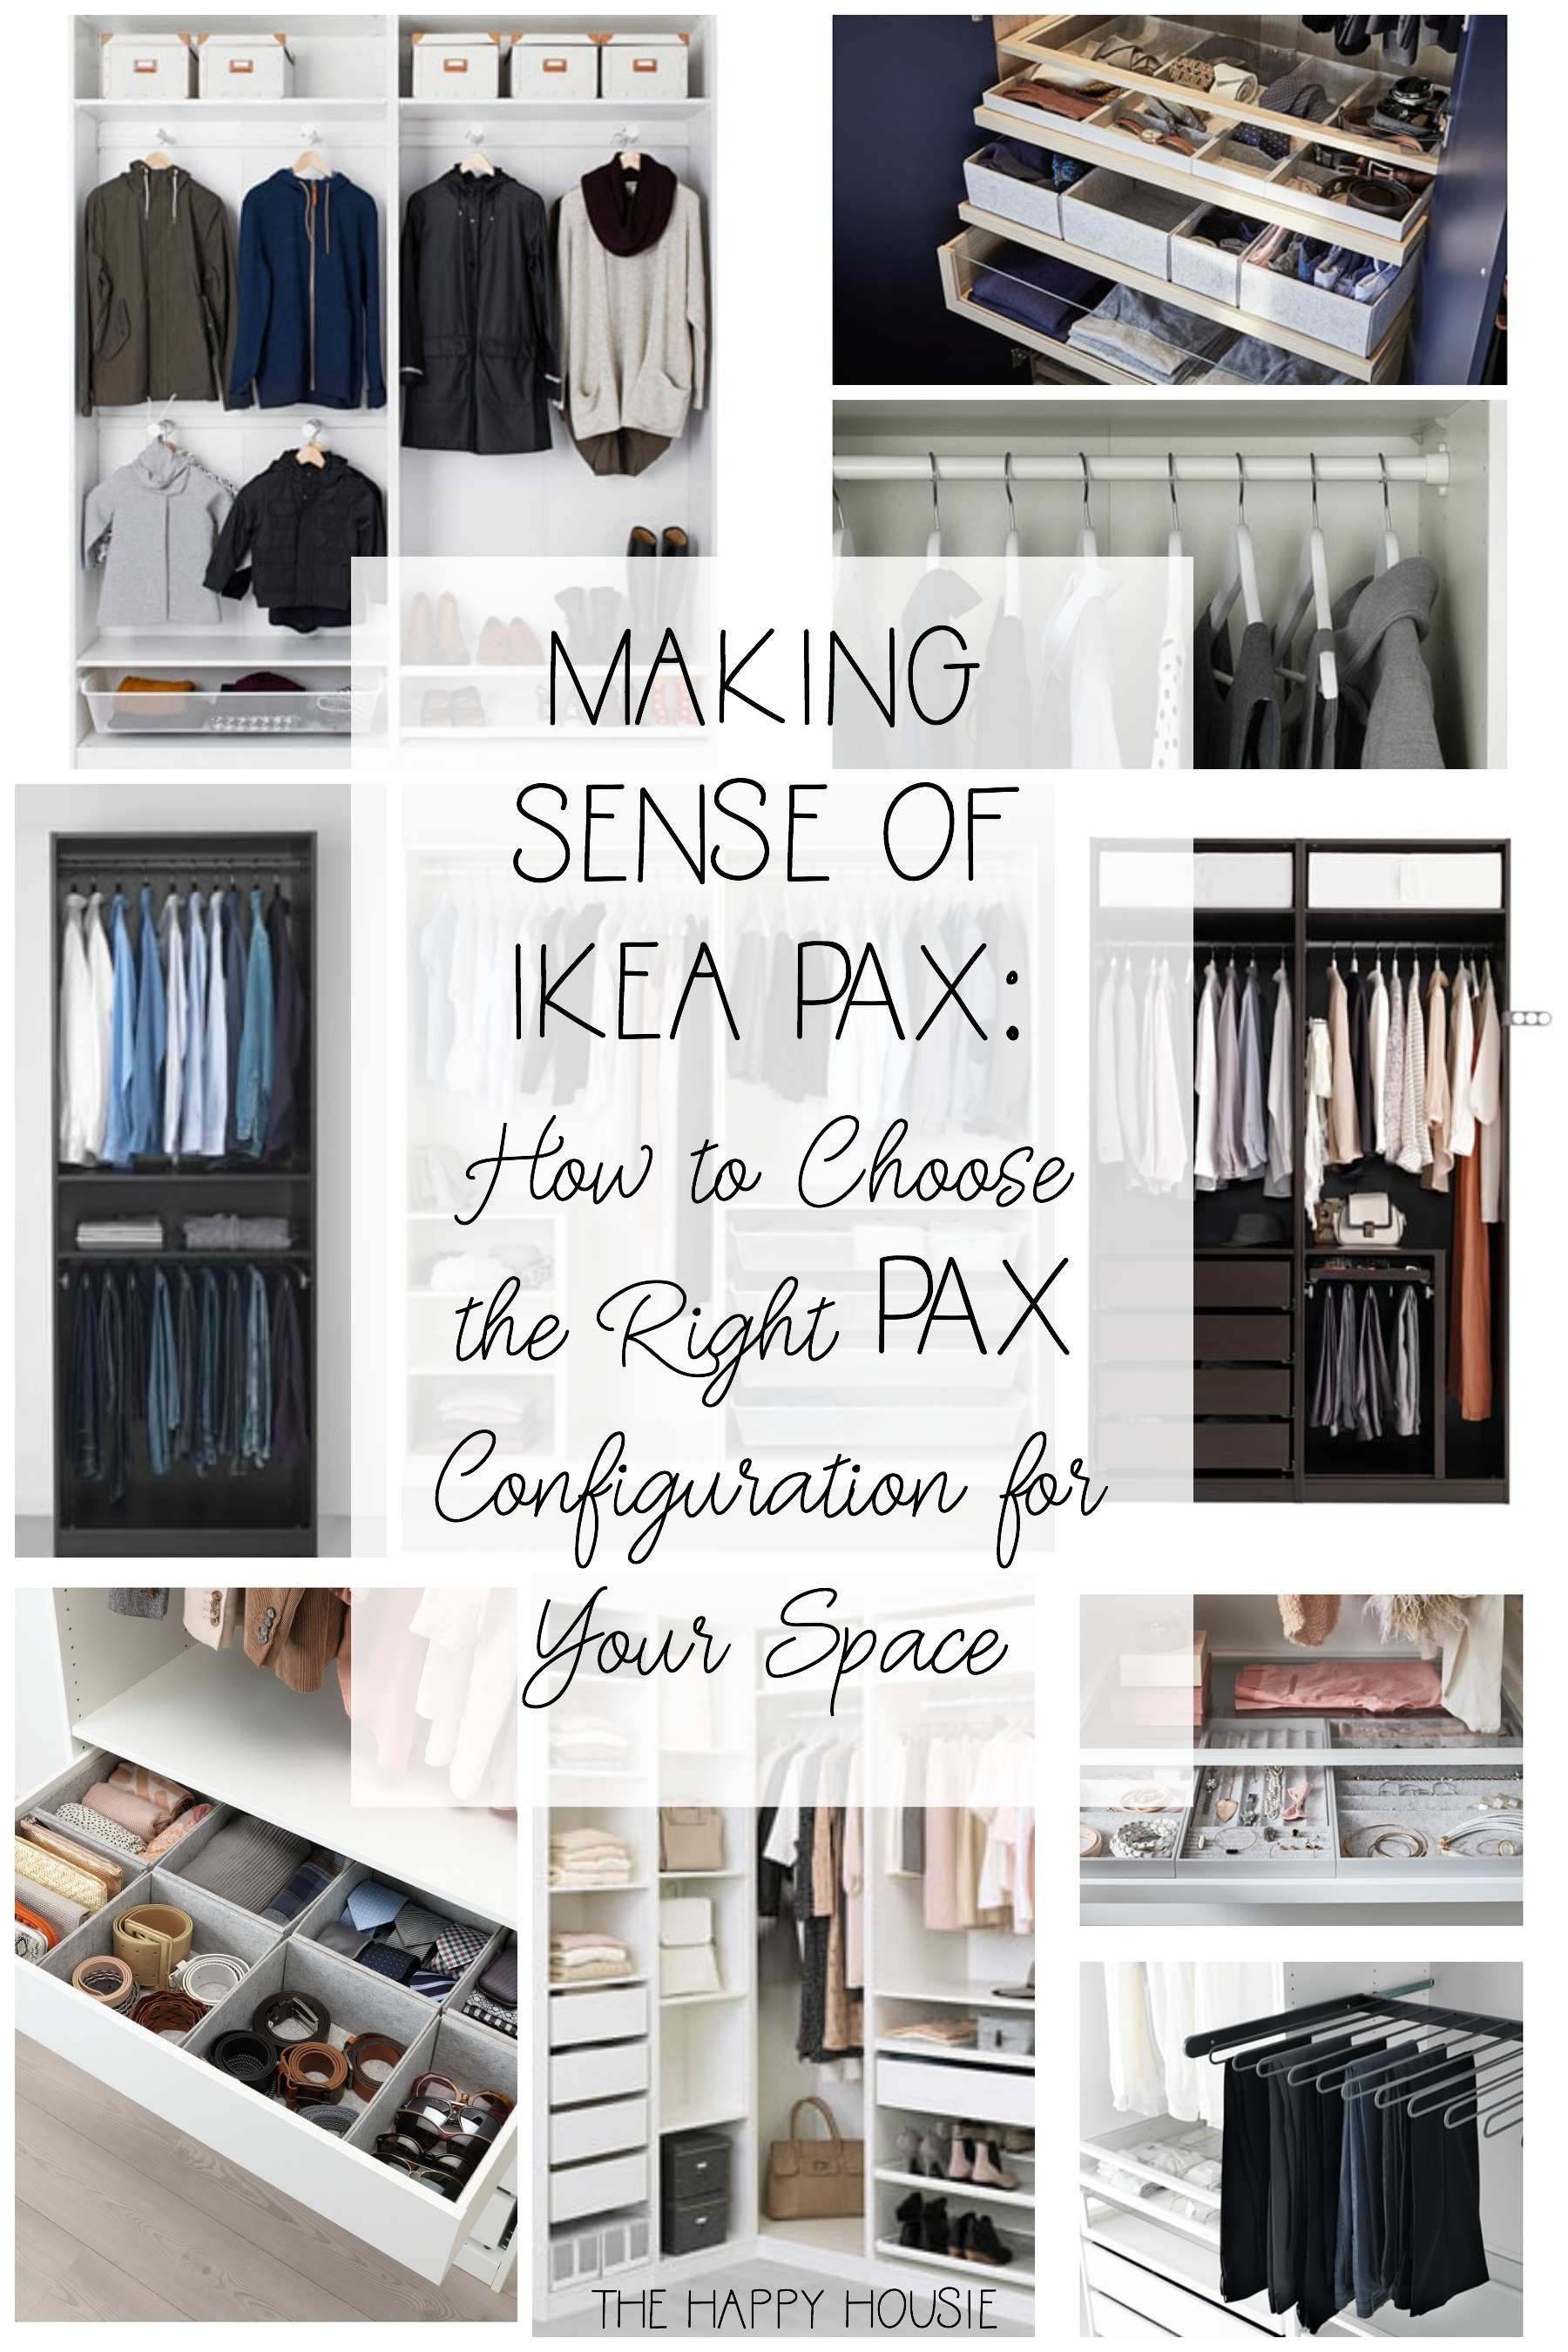 Making Sense Of Ikea Pax How To Choose The Right Pax Configuration For Your Space The Happy Housie